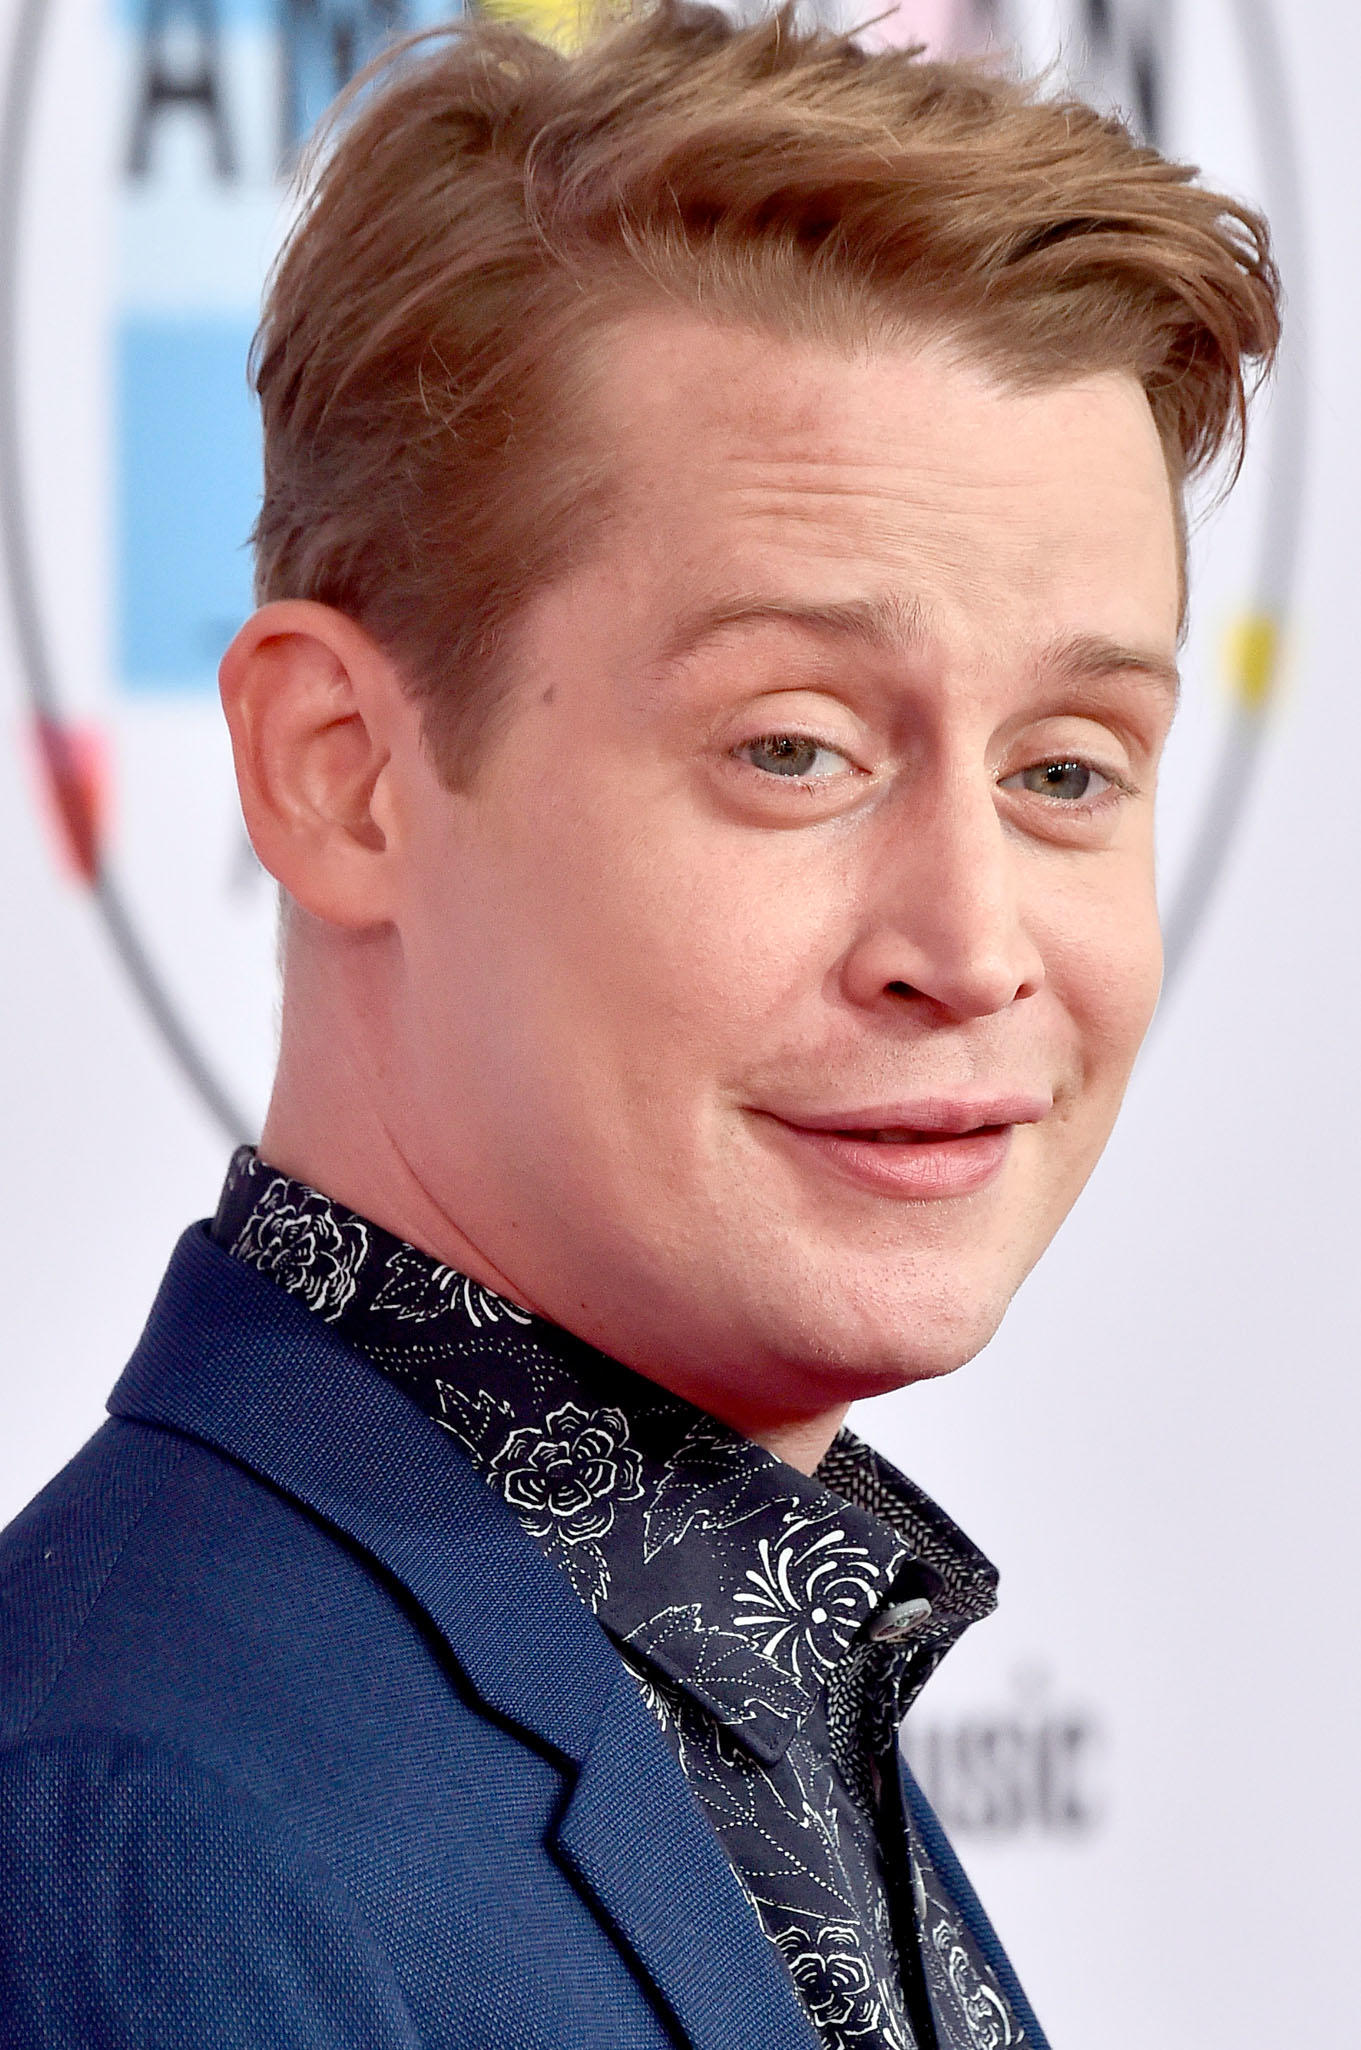 Macaulay Culkin at the 2018 American Music Award in Los Angeles.